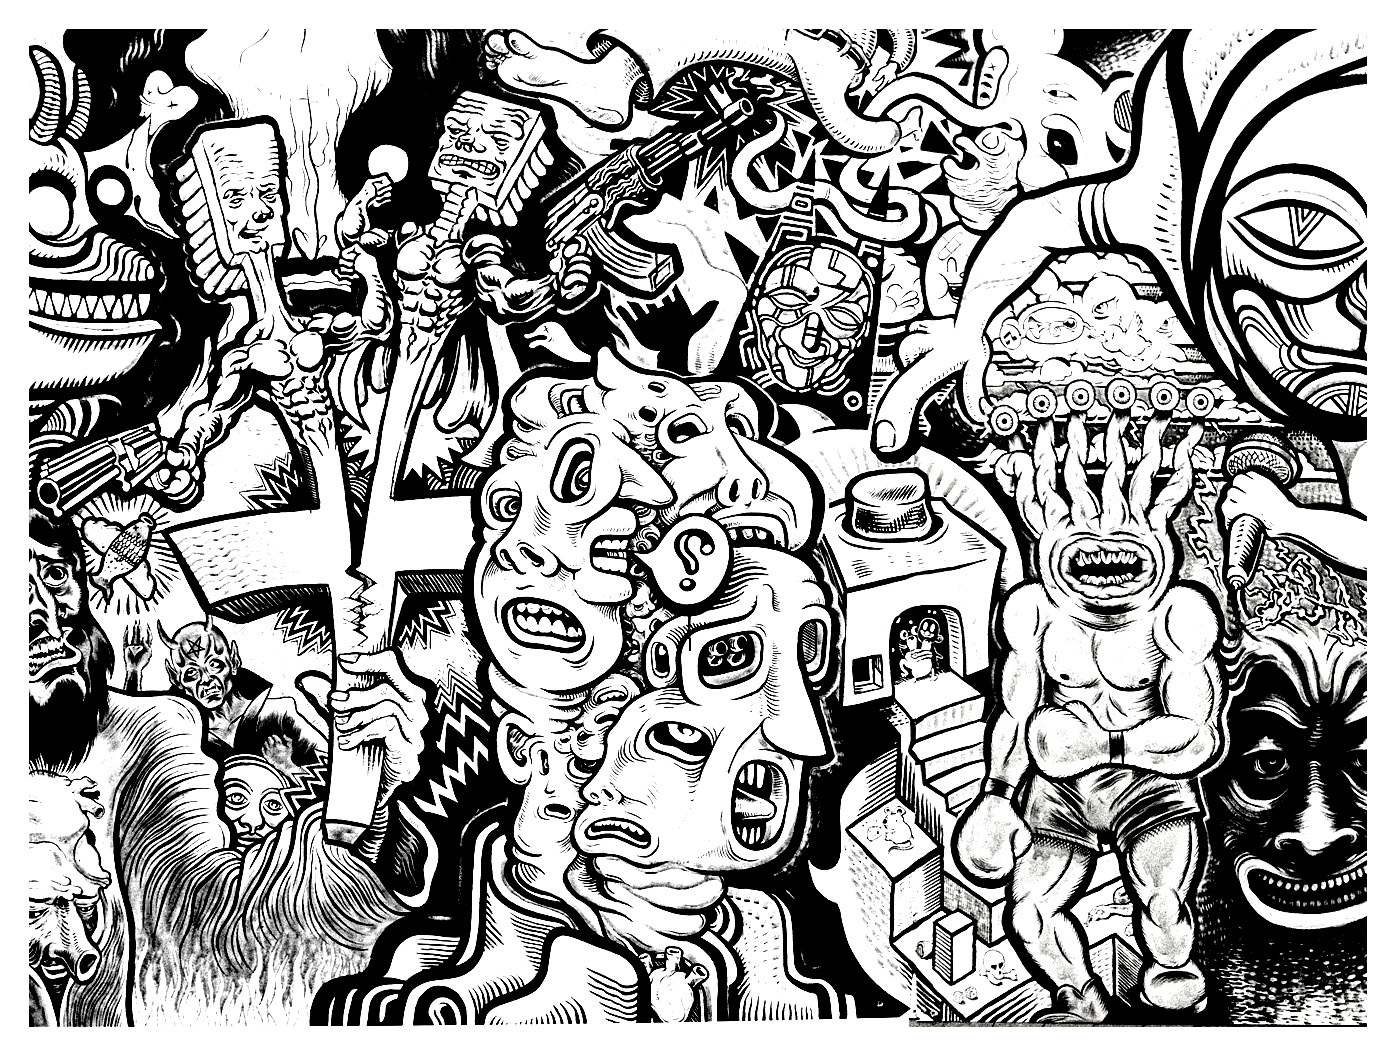 Fresco tags 2 - Street Art Adult Coloring Pages